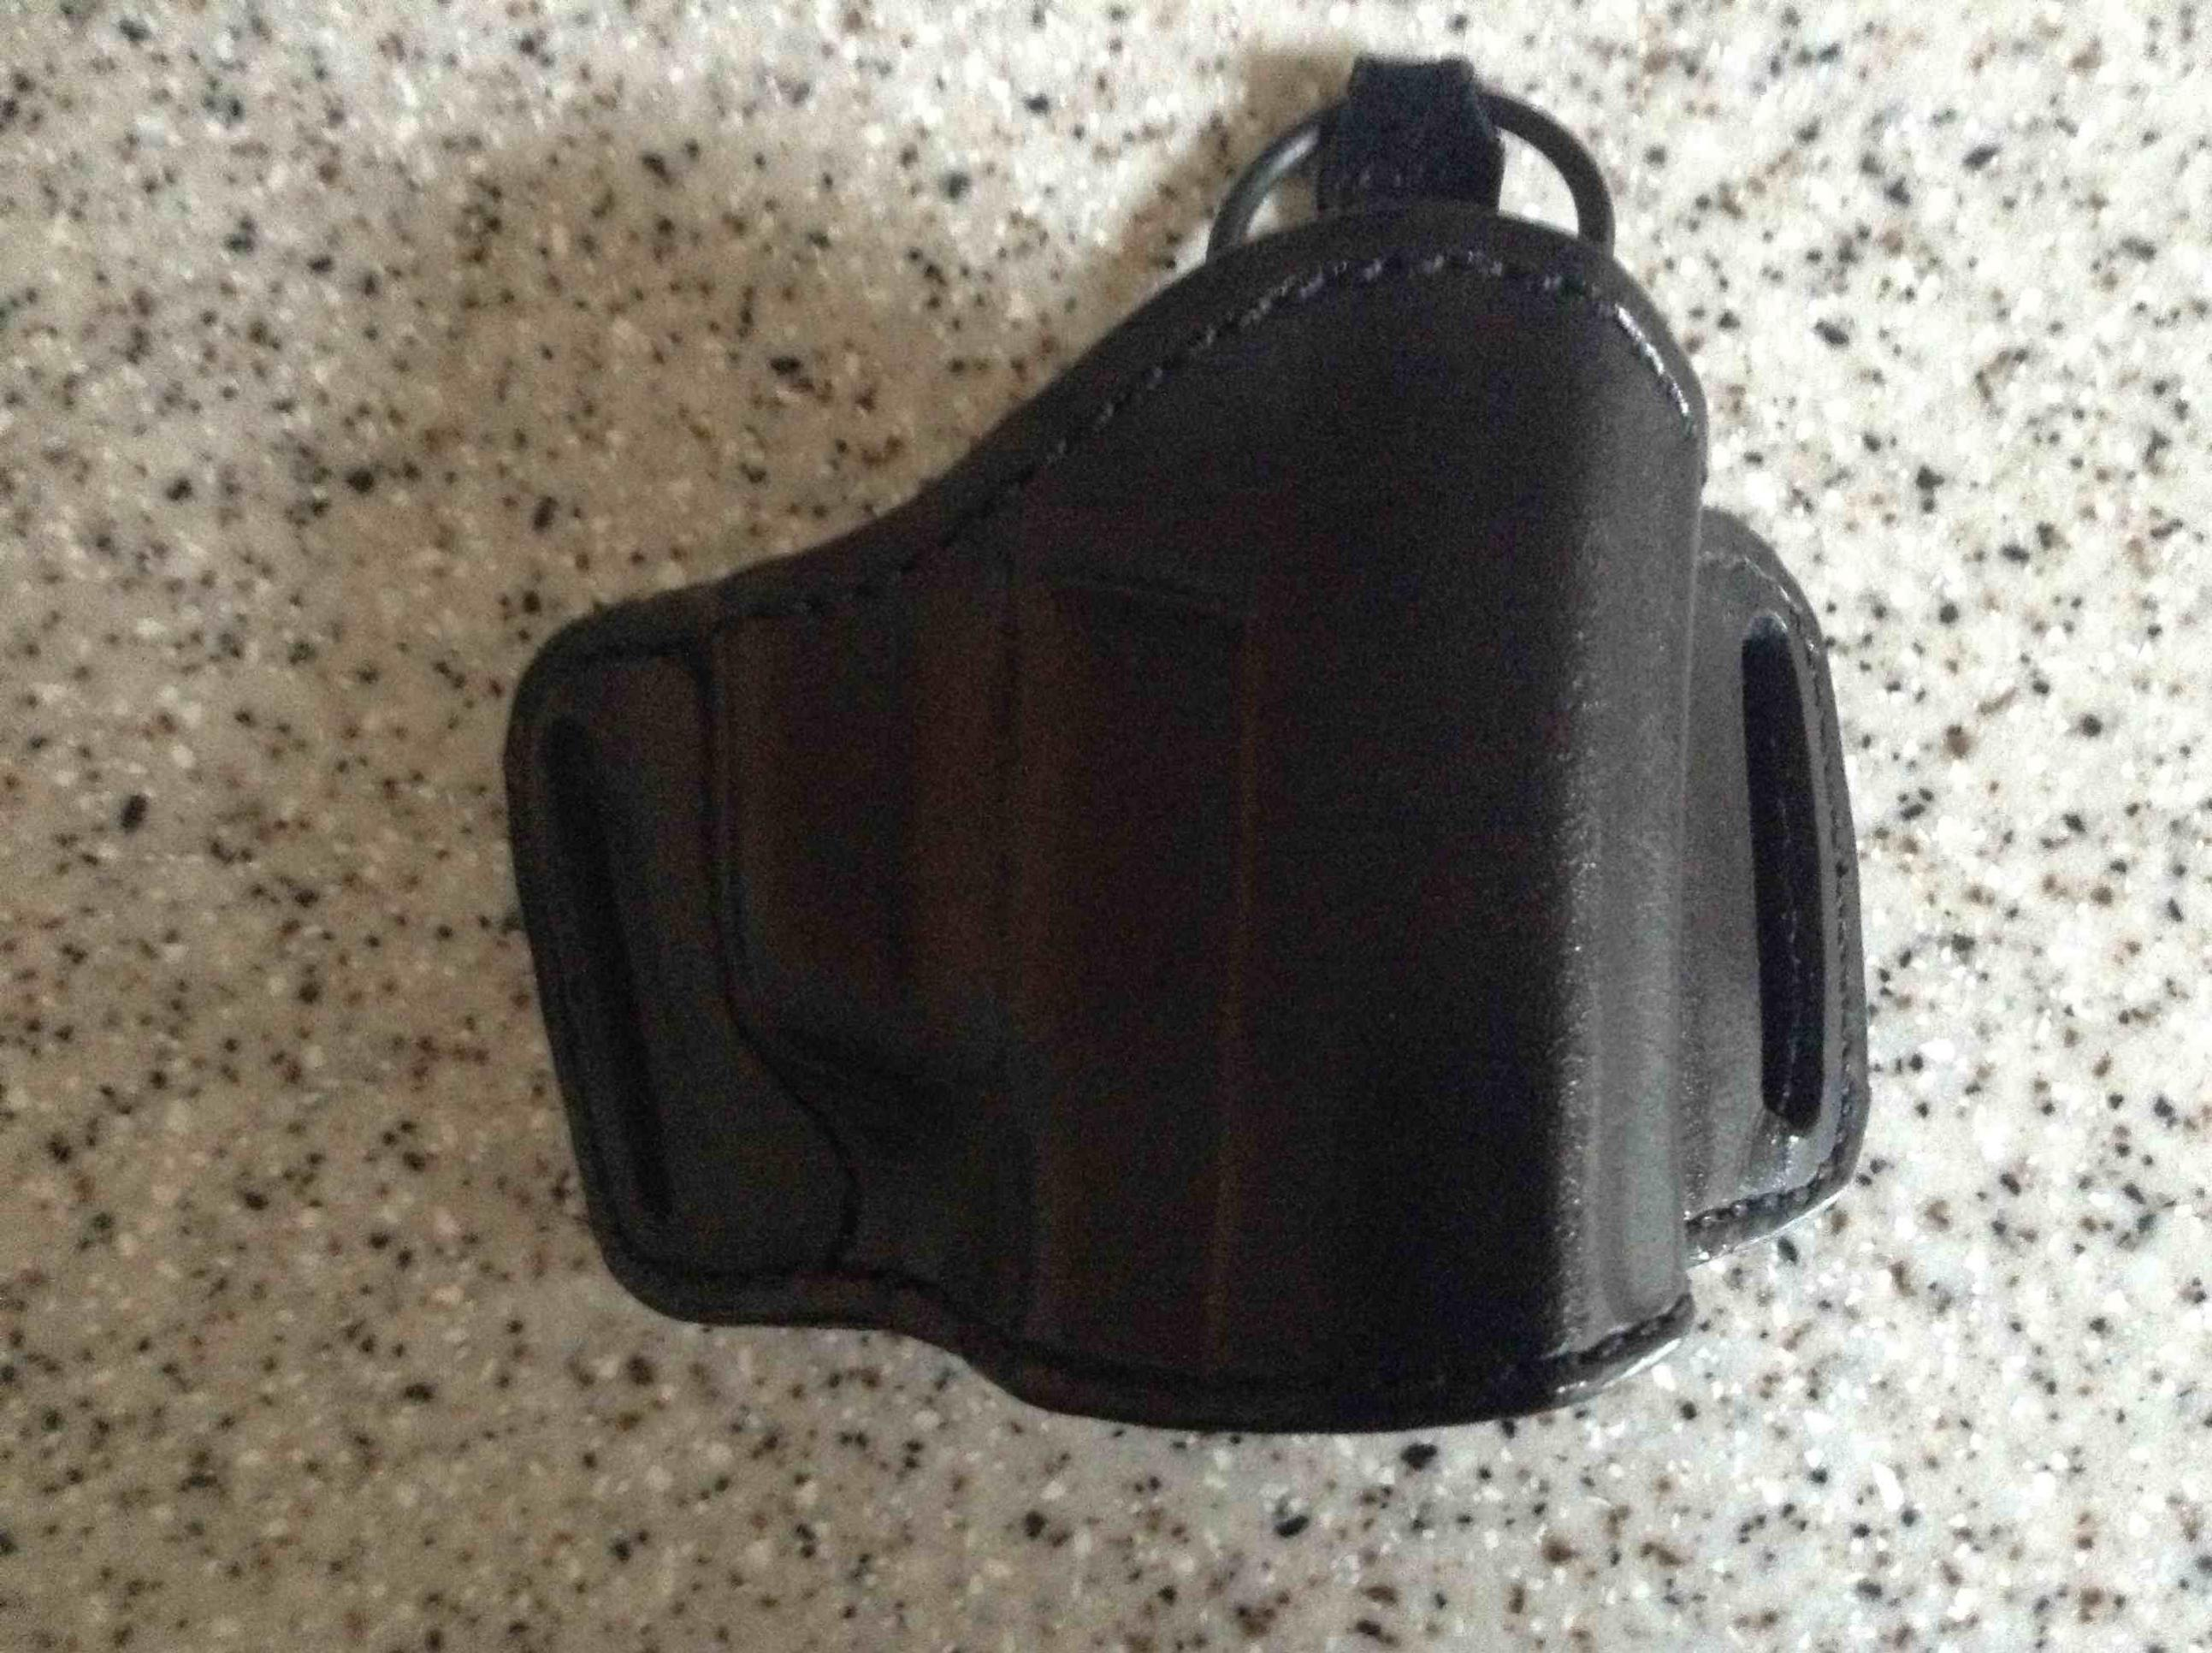 Blackhawk and Bianchi Sig P220/226 leather holsters for sale-imageuploadedbytapatalk-hd1364661274.158436.jpg